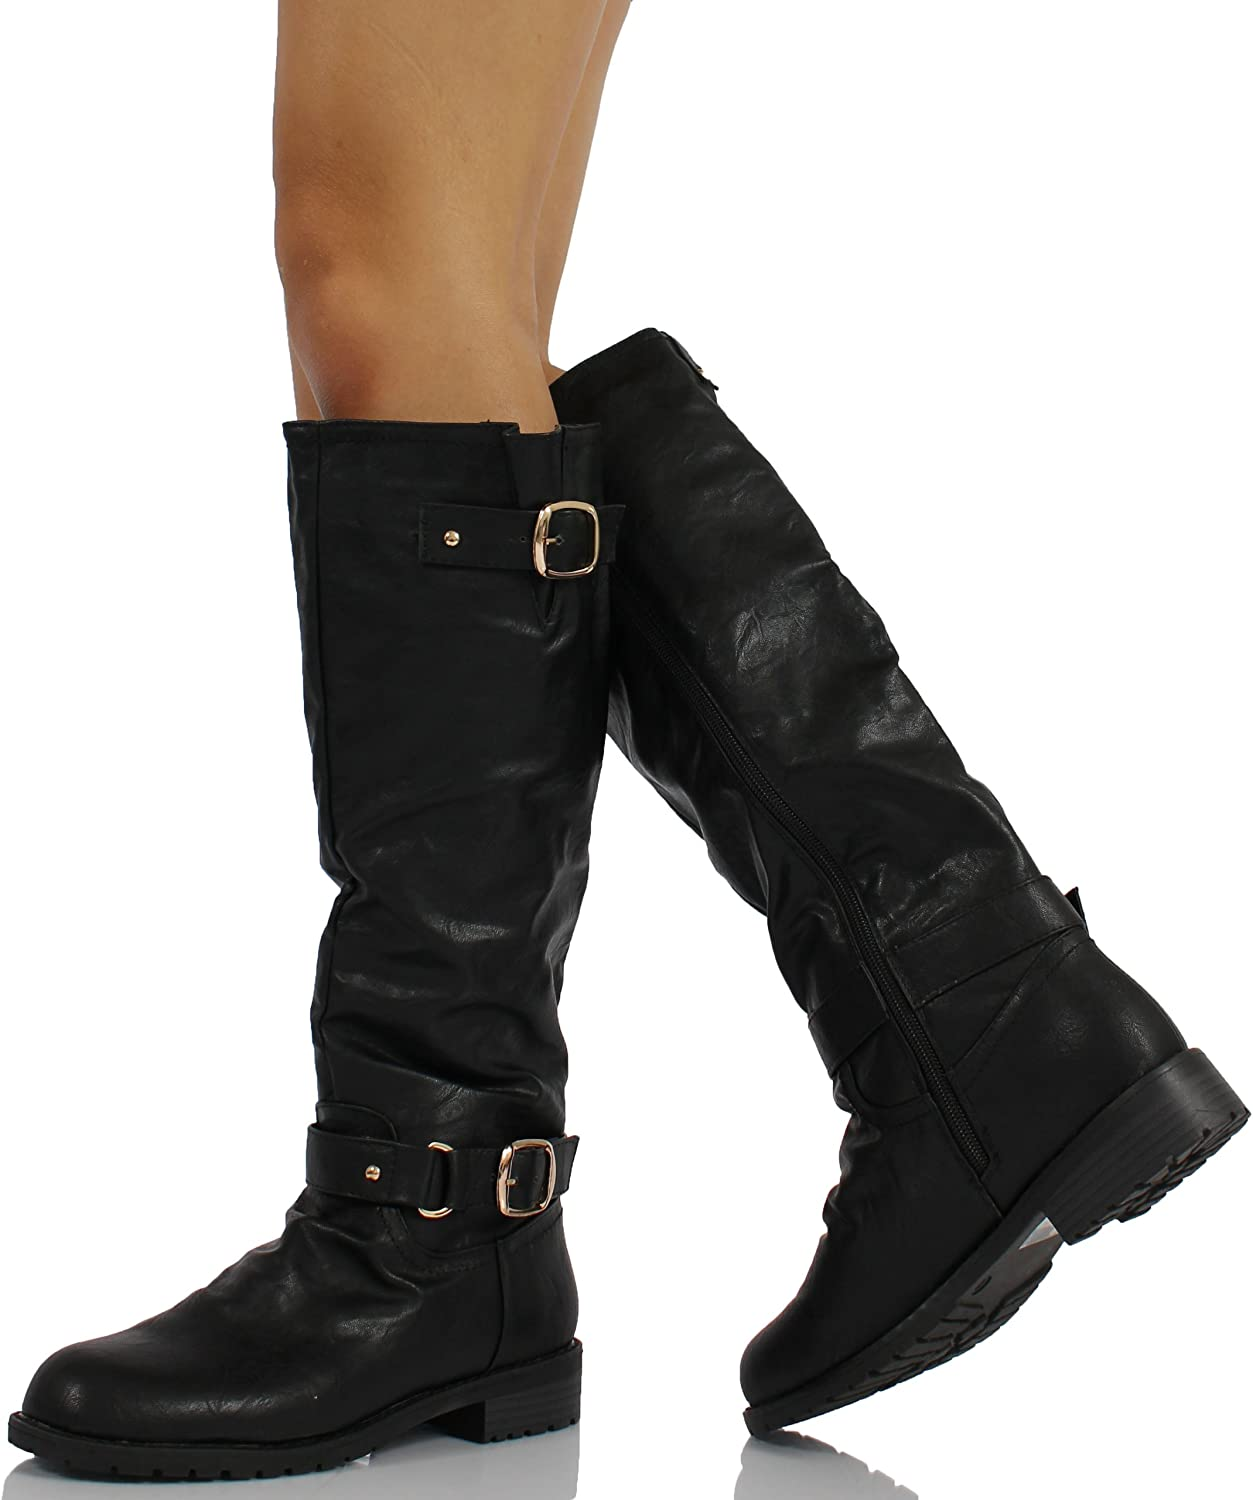 MFS Black Faux Leather Double Buckle Knee High Riding Low Heel Boot Travis-01 6